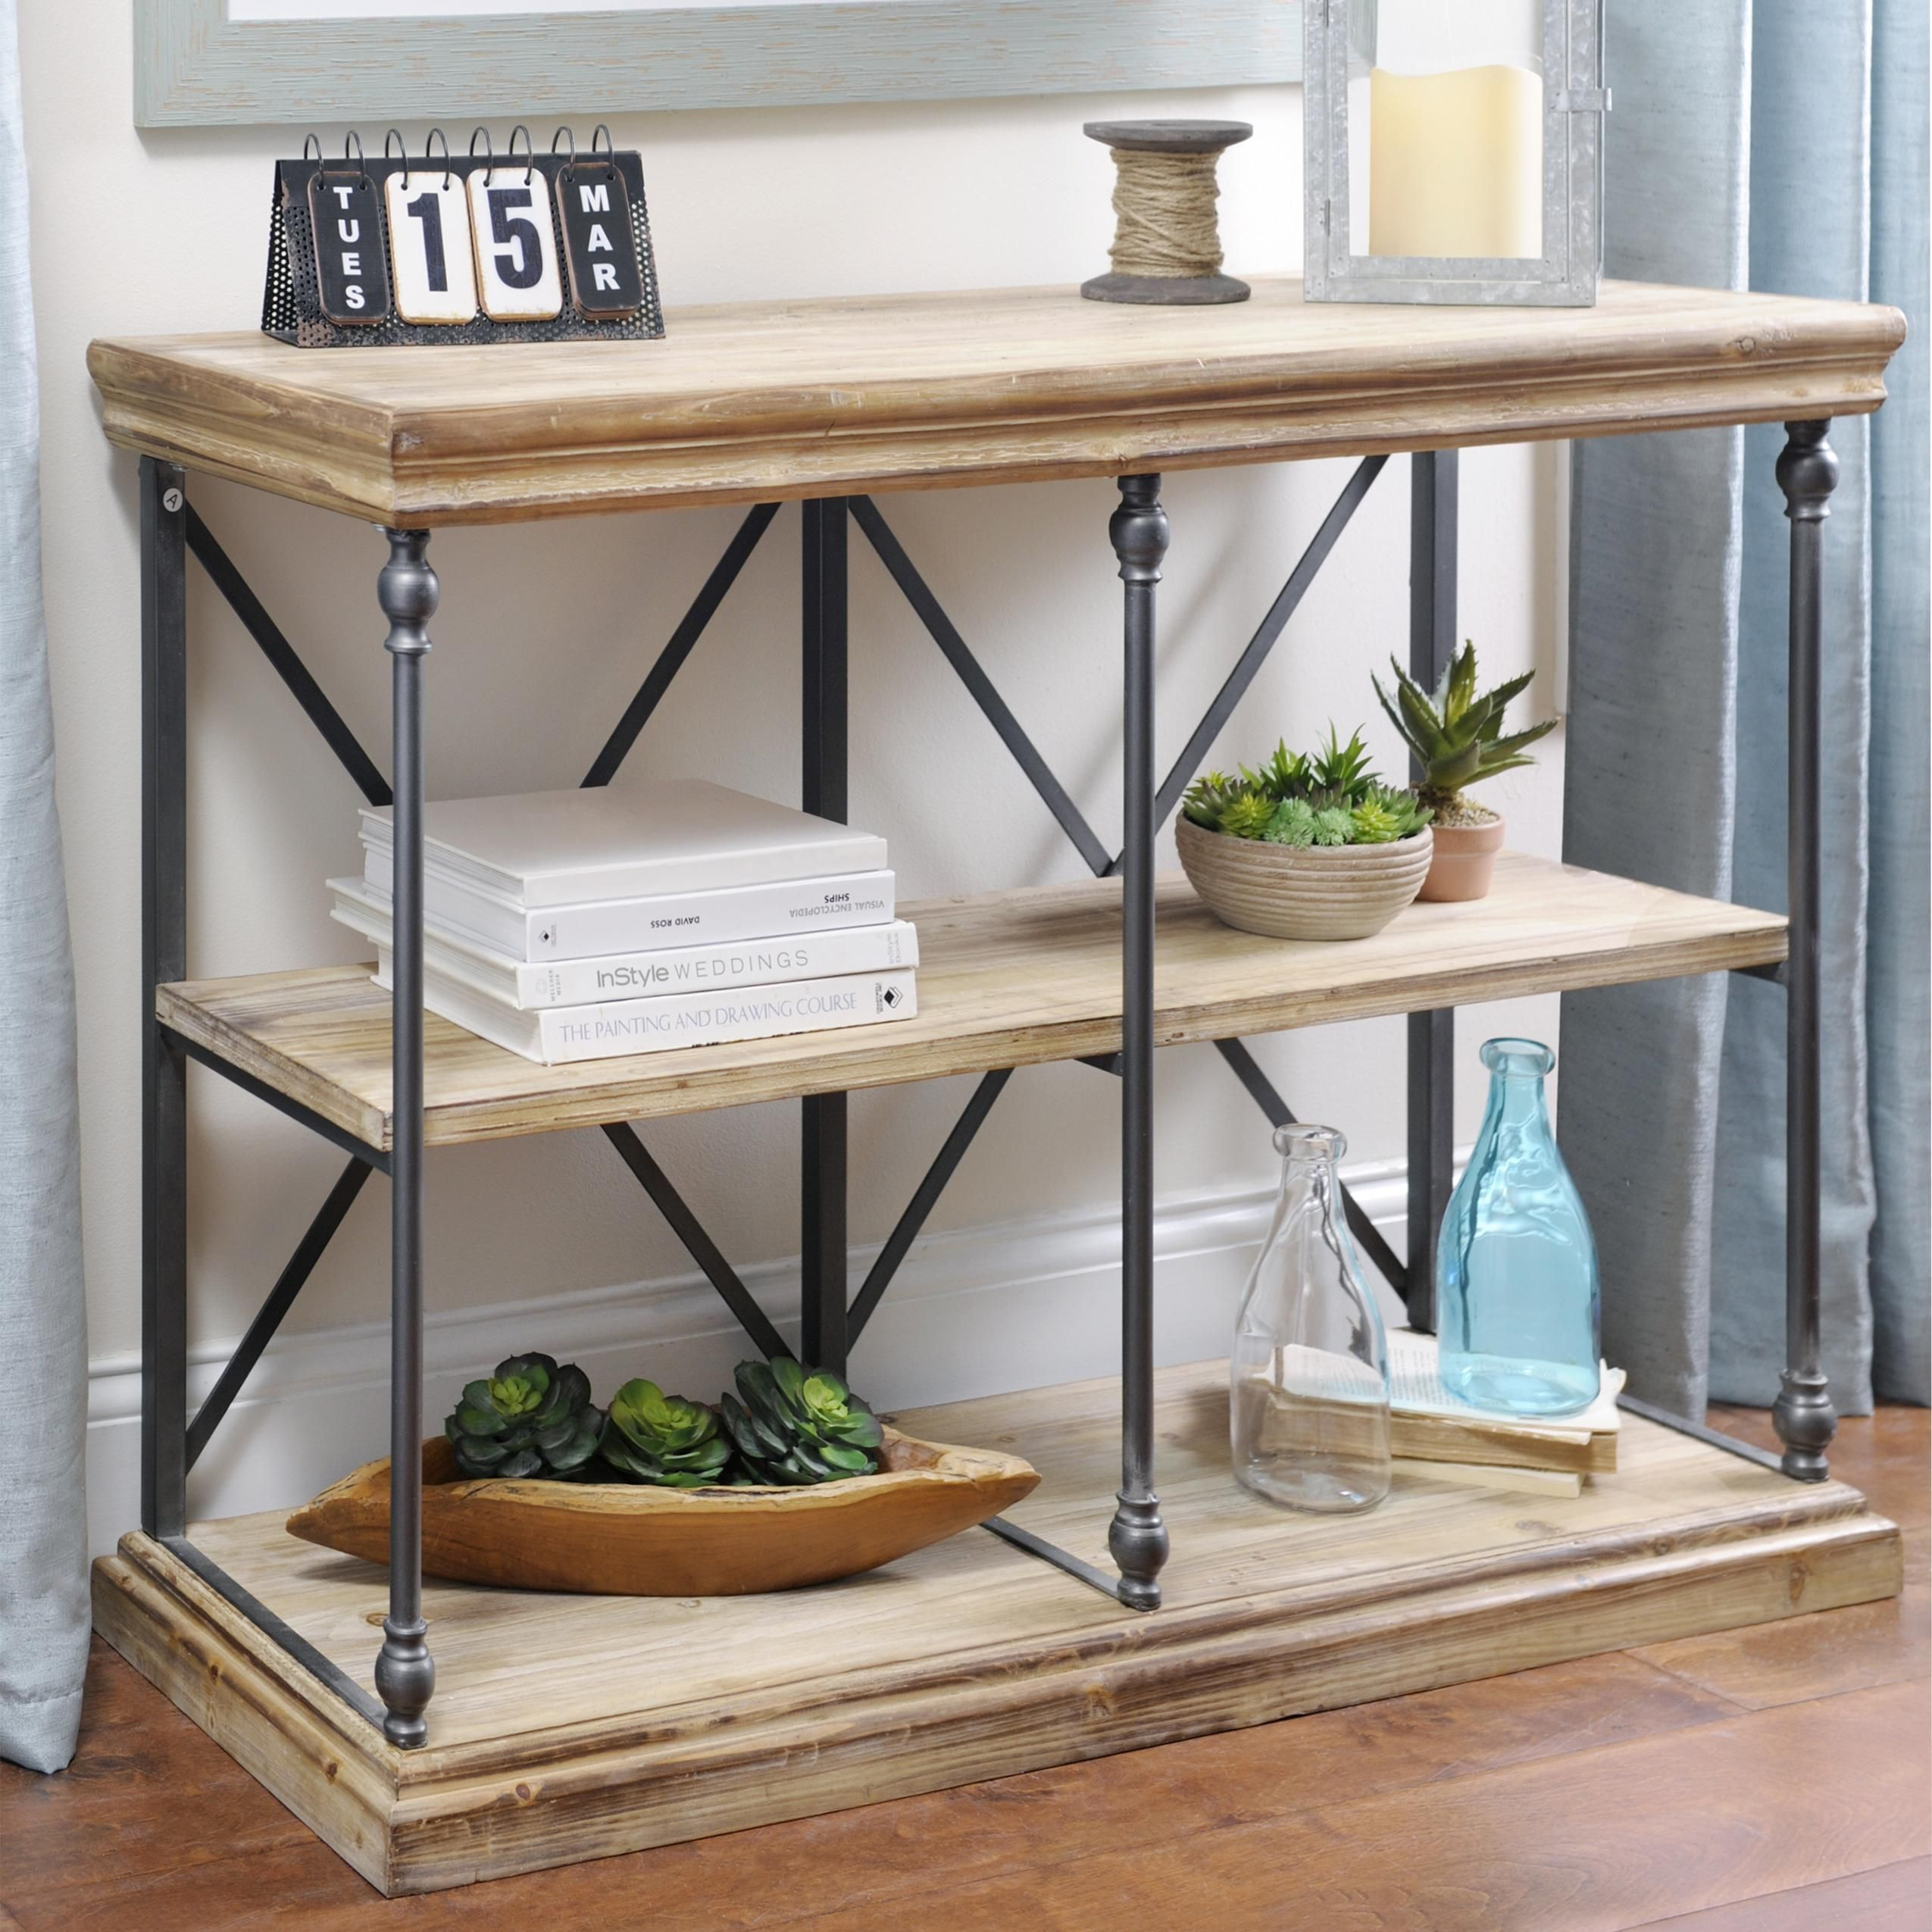 Sonoma TwoTier Console Table Reclaimed wood shelves